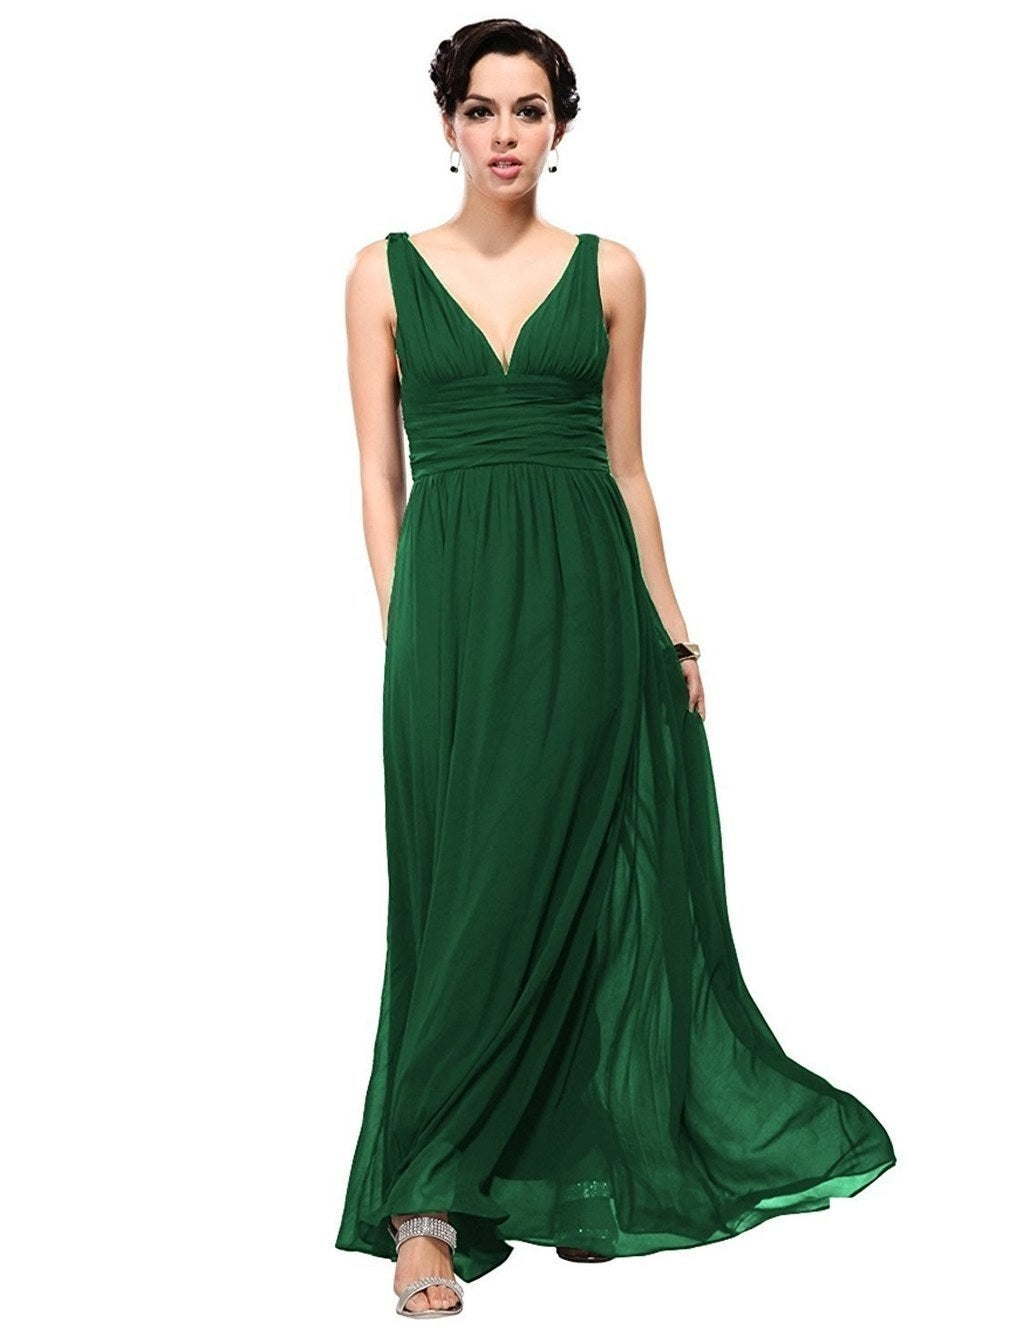 20 bridesmaid dresses you can get on amazon that your friends will a sleeveless dress that has answered your help me im poor prayers ombrellifo Image collections